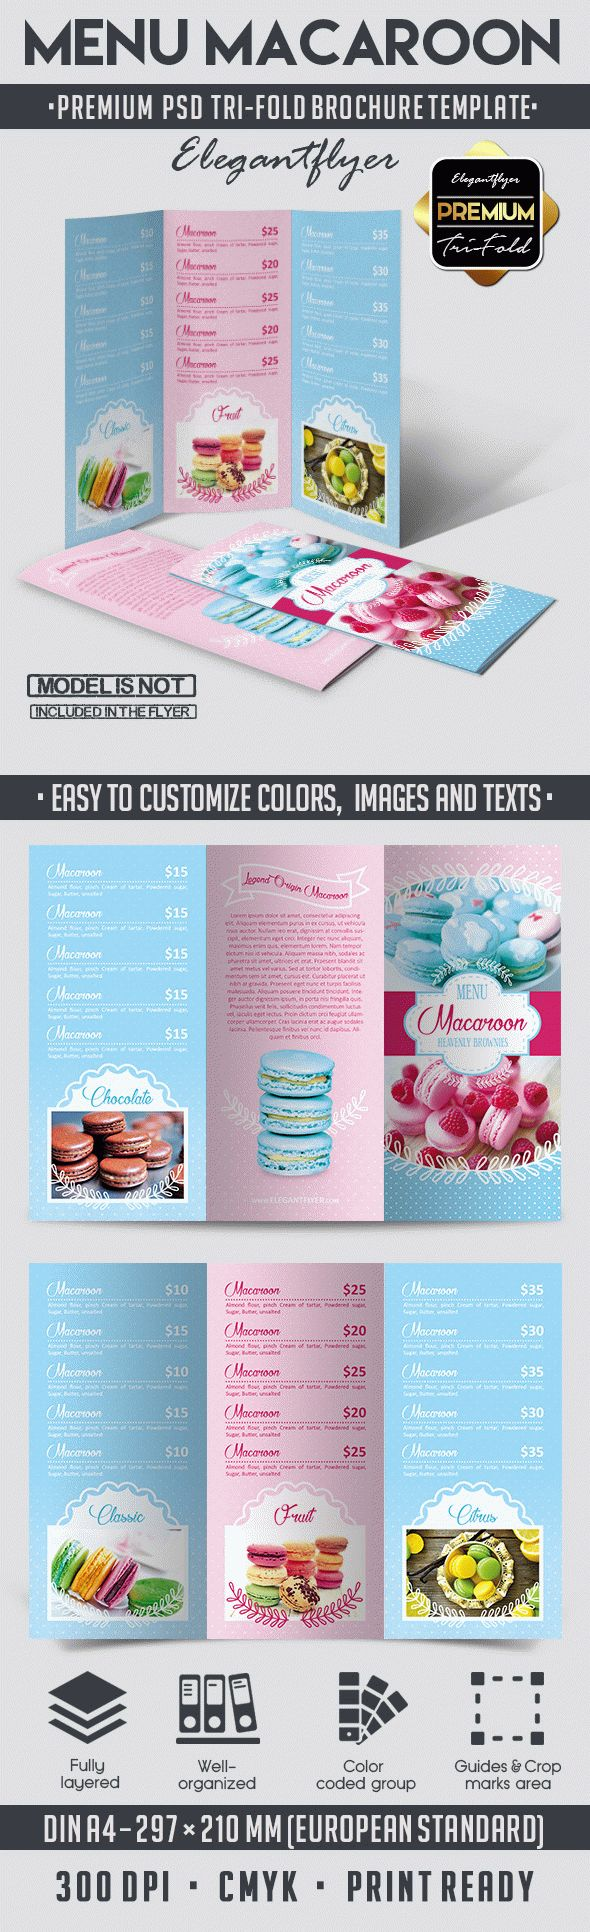 Menu macaroon tri fold brochure psd template by for French brochure template